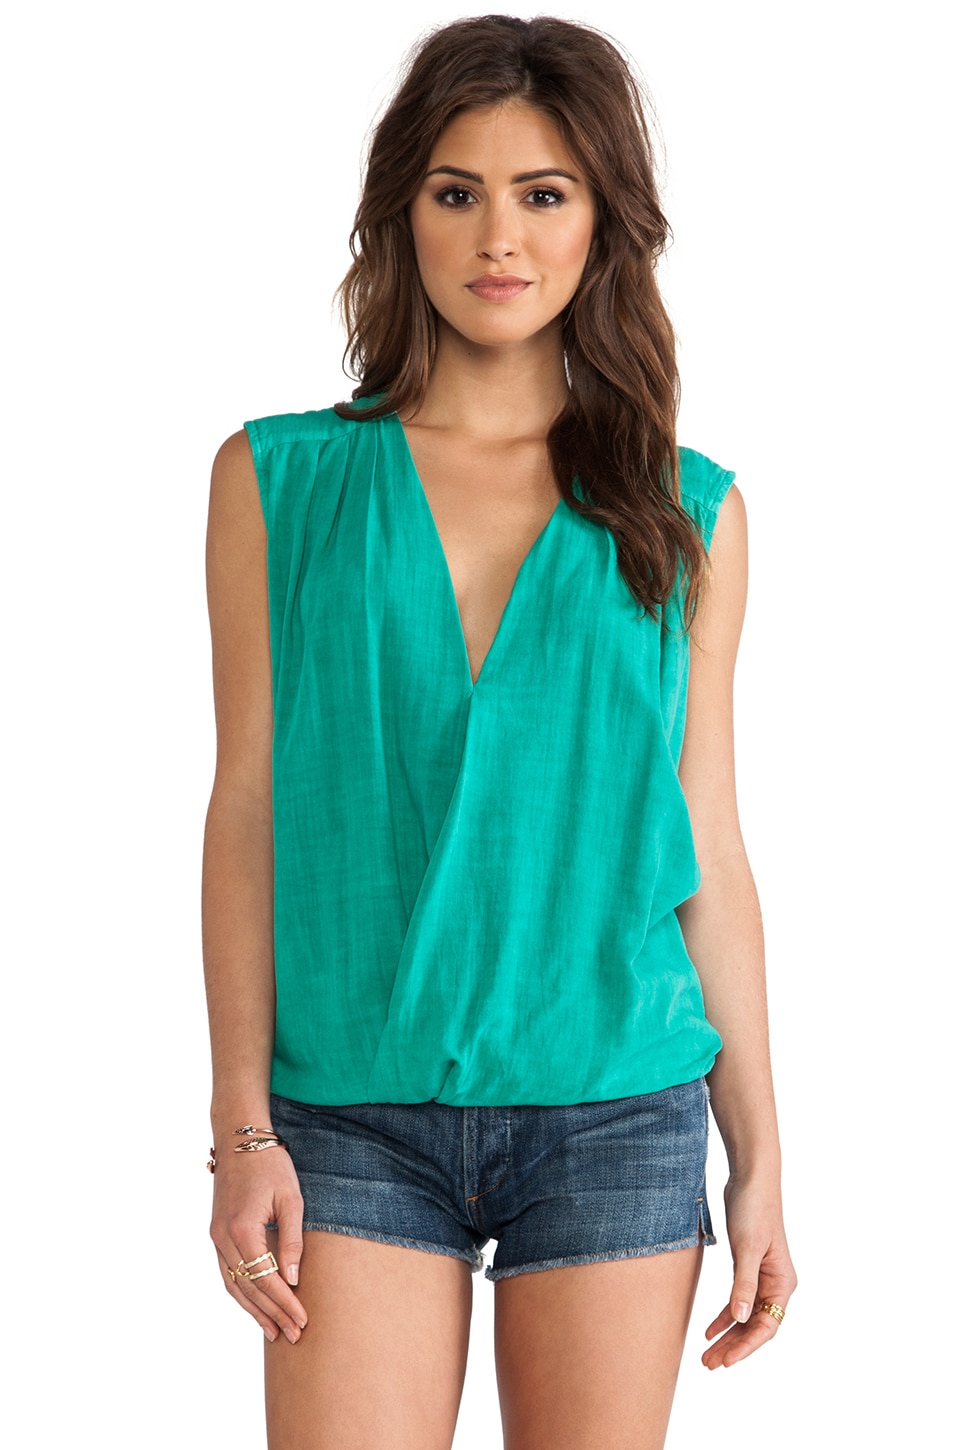 SAM&LAVI Miranda Tank in Kelly Green